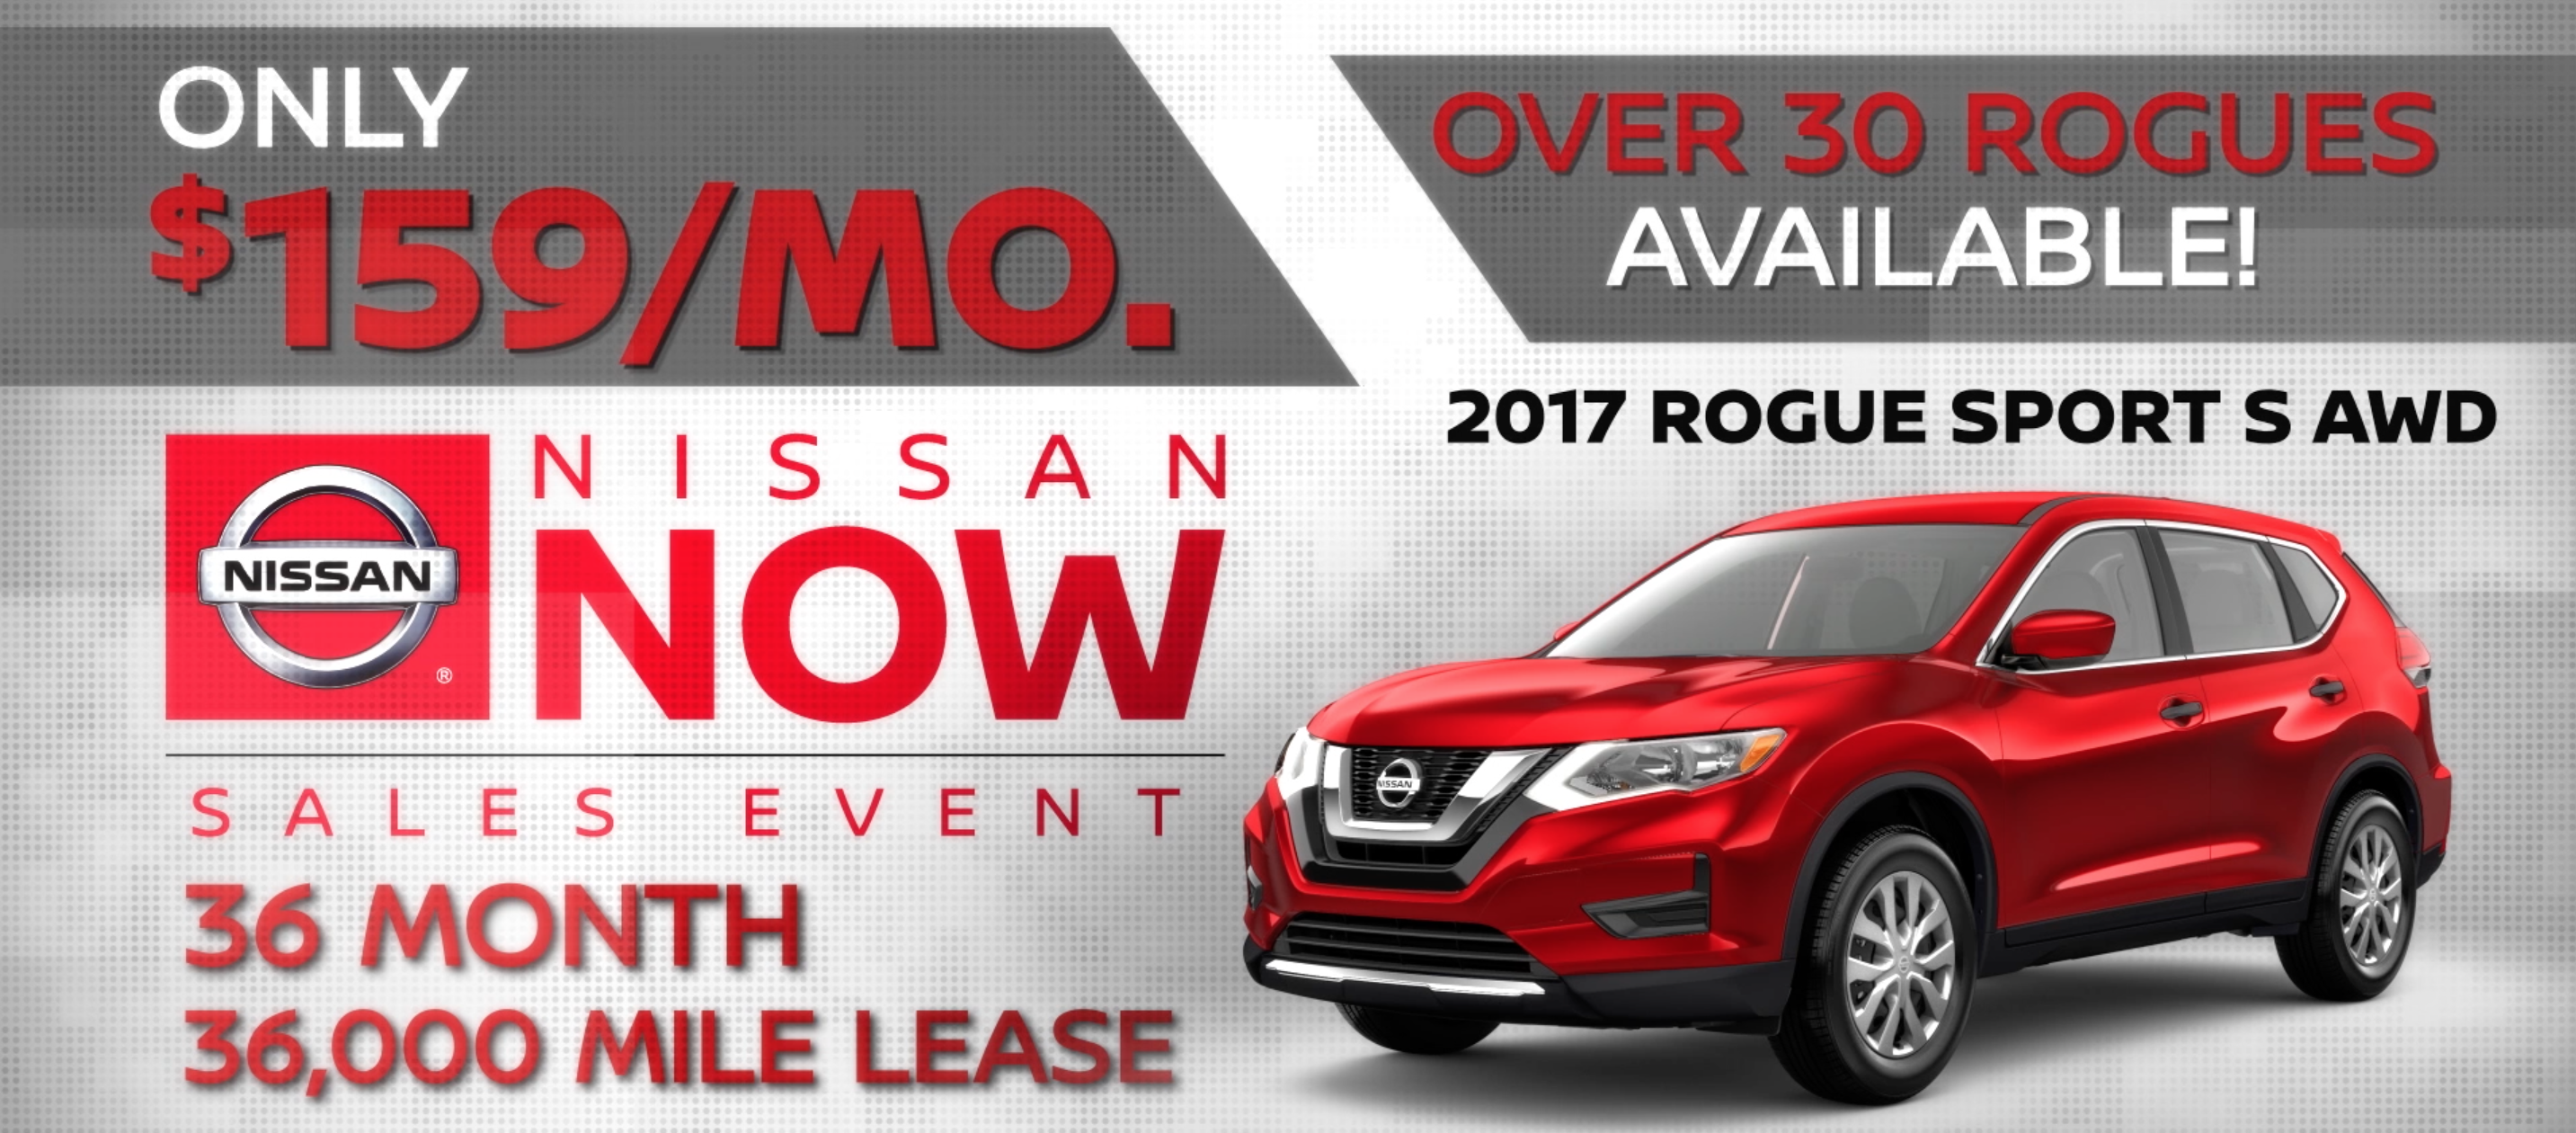 Lease a 2017 Rogue Billings for $159 a Month